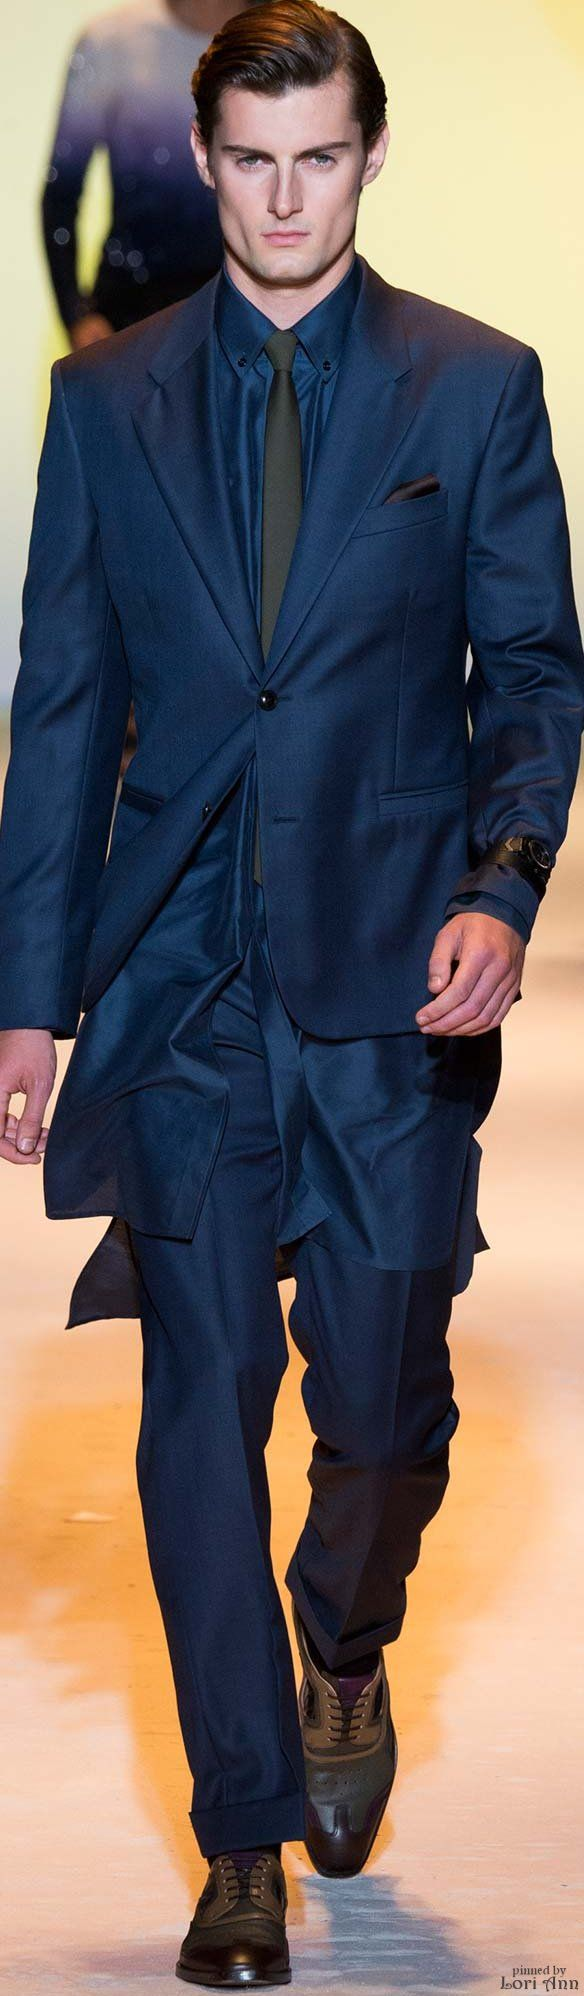 Versace Spring 2016 | Men's Fashion | Menswear | Moda Masculina | Shop at designerclothingfans.com